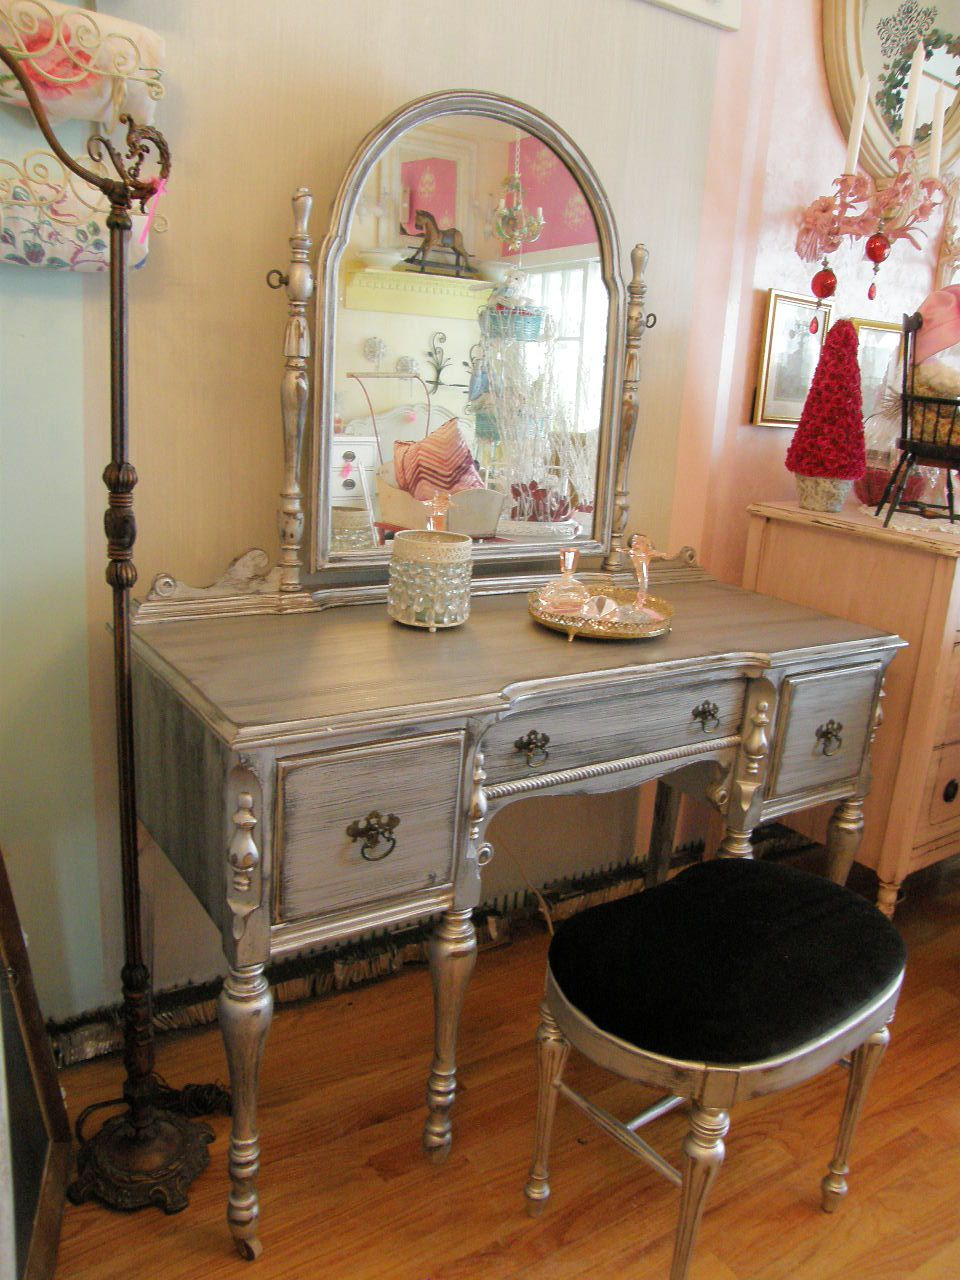 New Silver Hayworth Vanity With Black Cushion Chair Color Decoration &  Furniture & Interior Design & Decoration Ideas Hayworth Vanity Mirrored  Furniture ... - Silver Distressed Vanity On Etsy, I Want To Try This With My